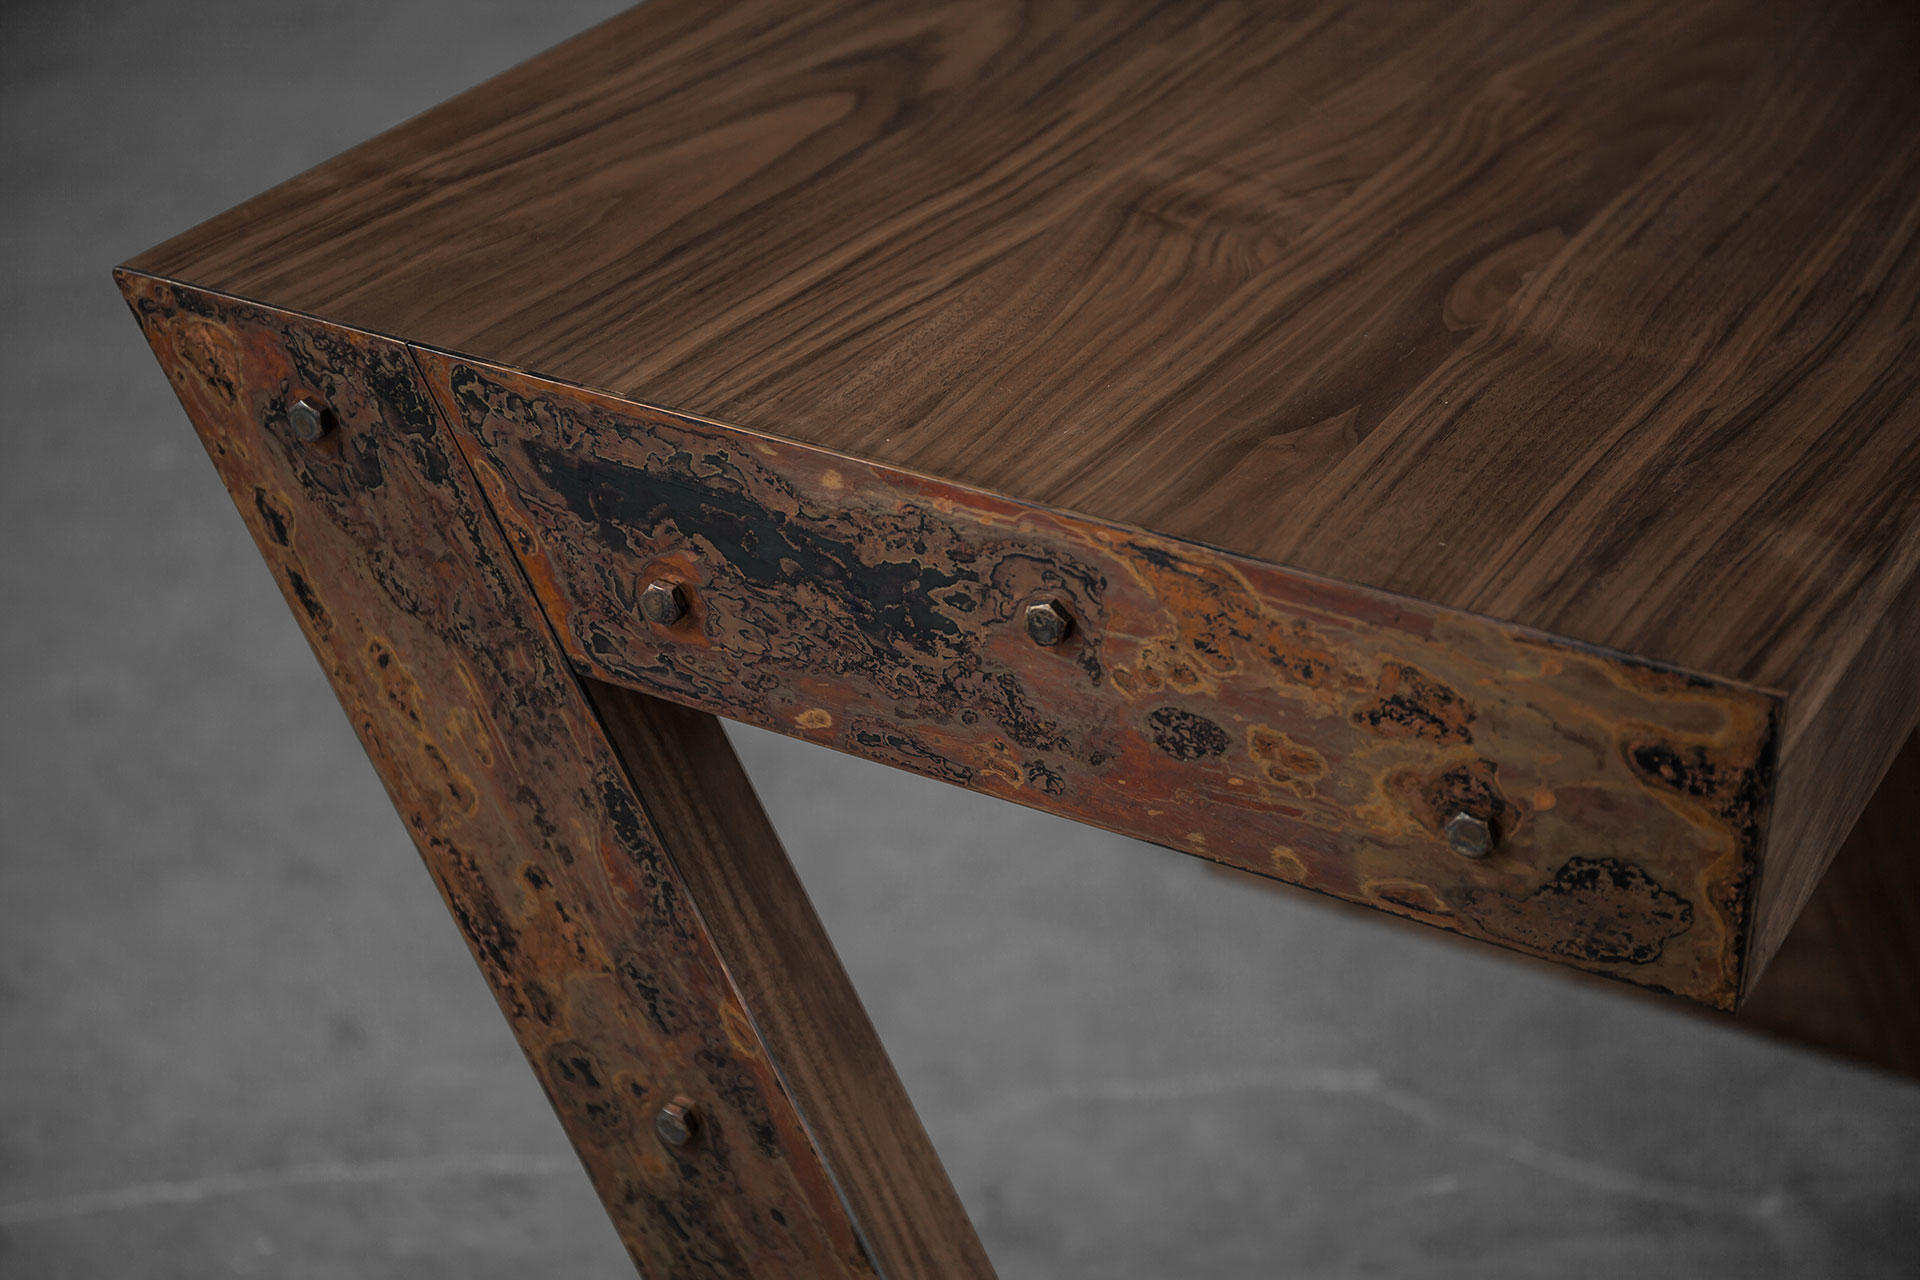 Aged copper metal and American walnut wood